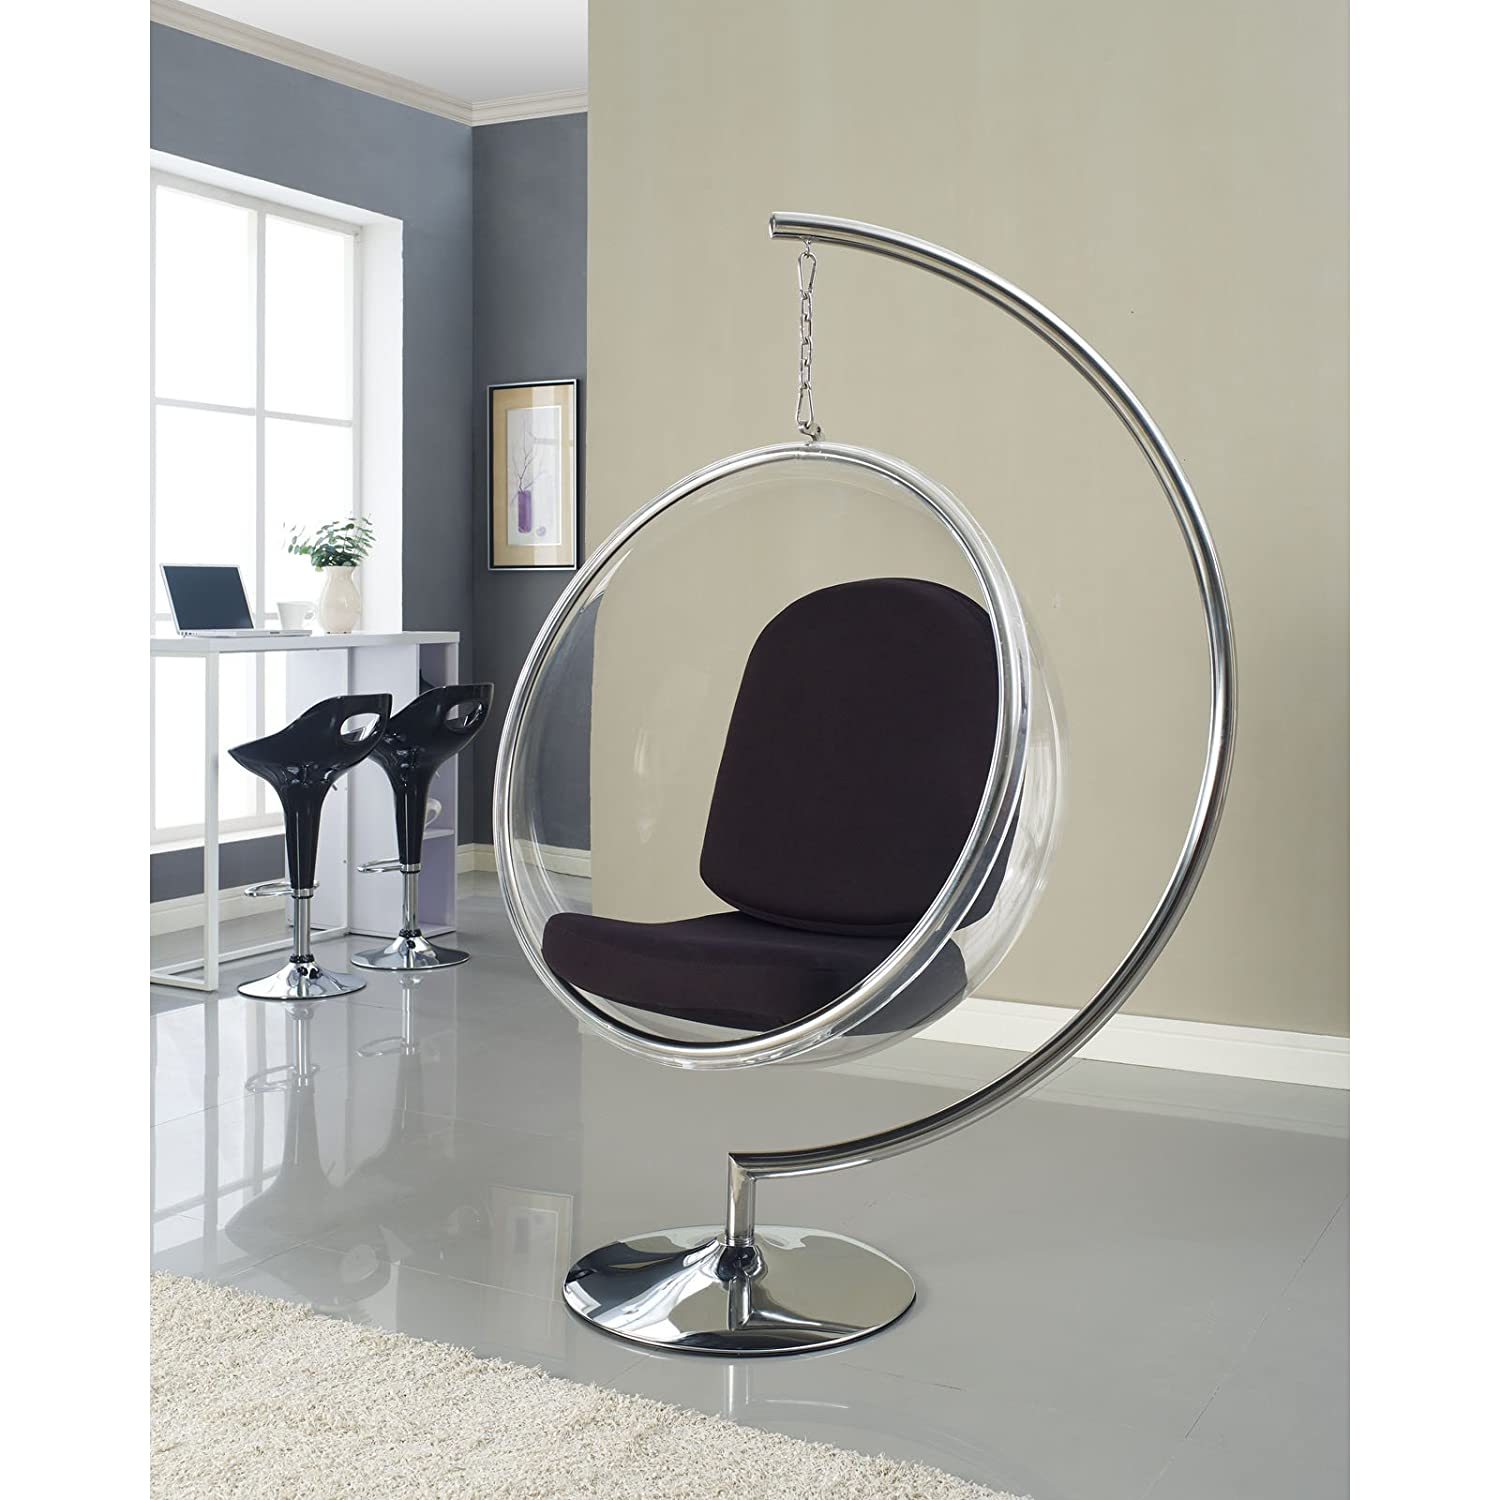 Bubble chair eero aarnio - Amazon Com Modway Eero Aarnio Style Bubble Chair With Black Pillows Kitchen Dining